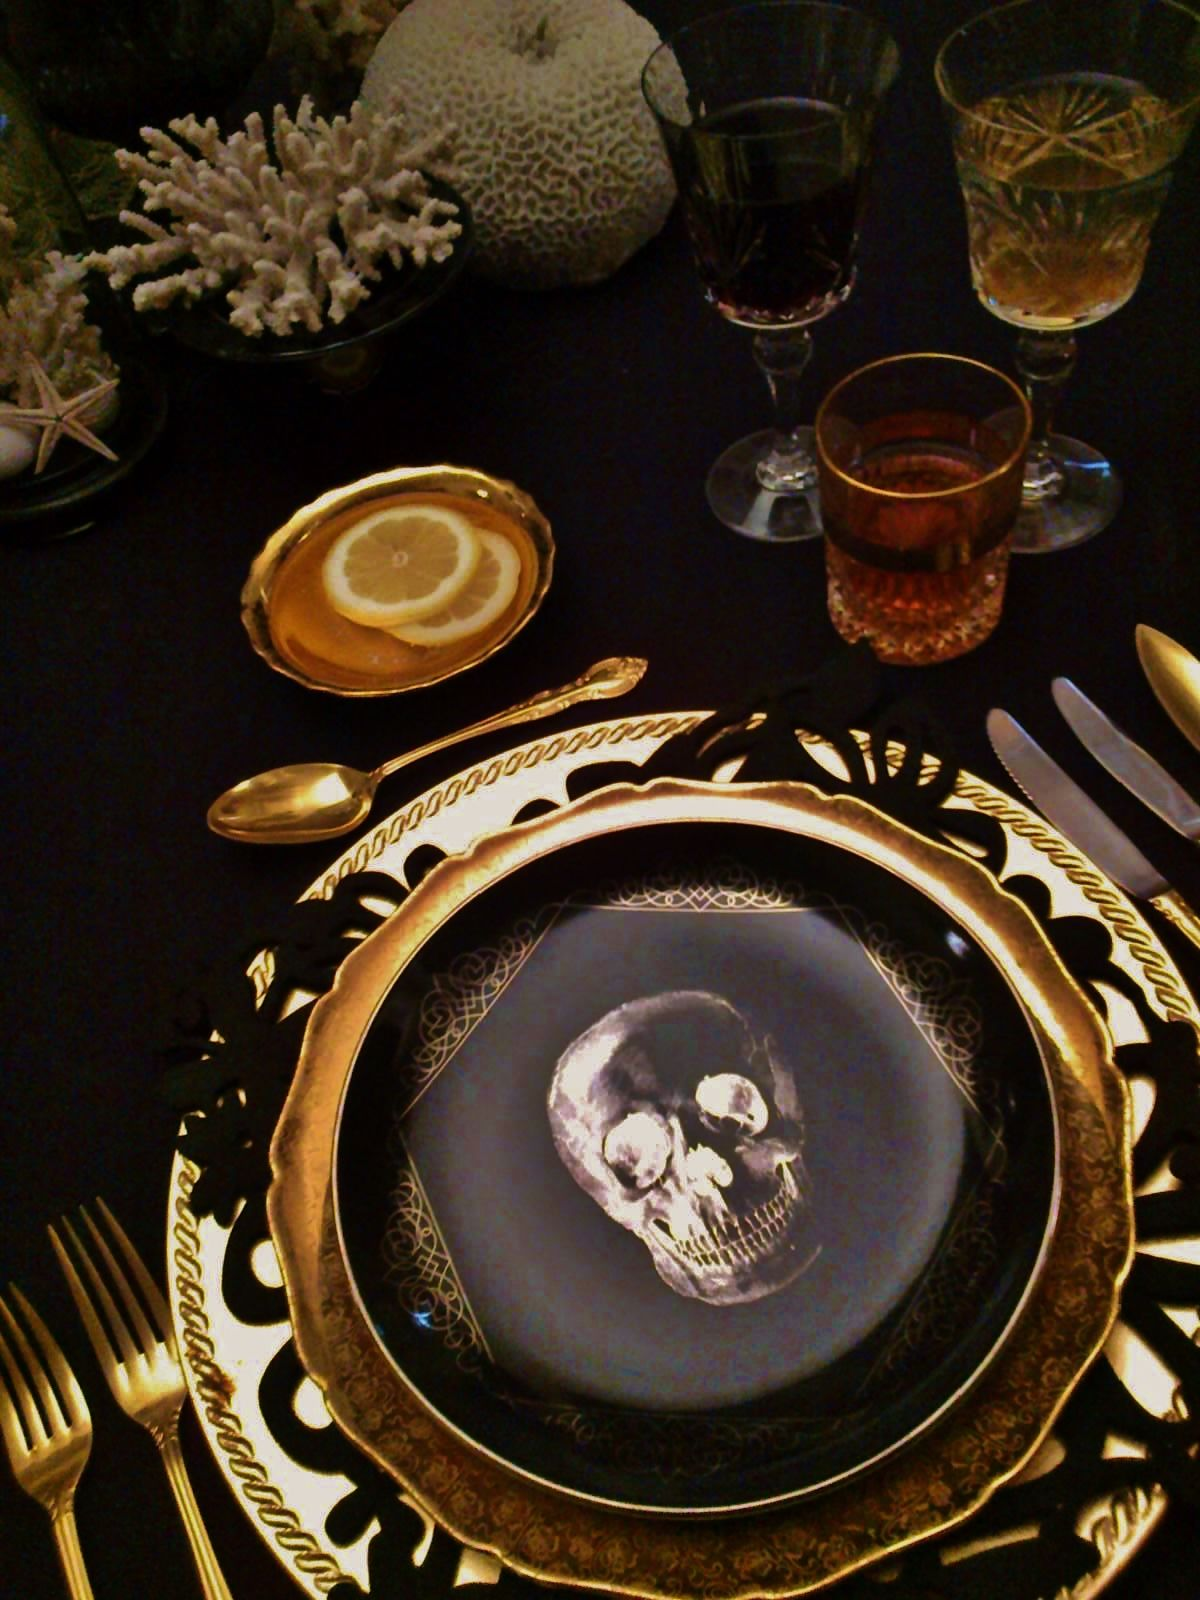 Setting A Dinner Table 20 Halloween Inspired Table Settings To Wow Your Dinner Party